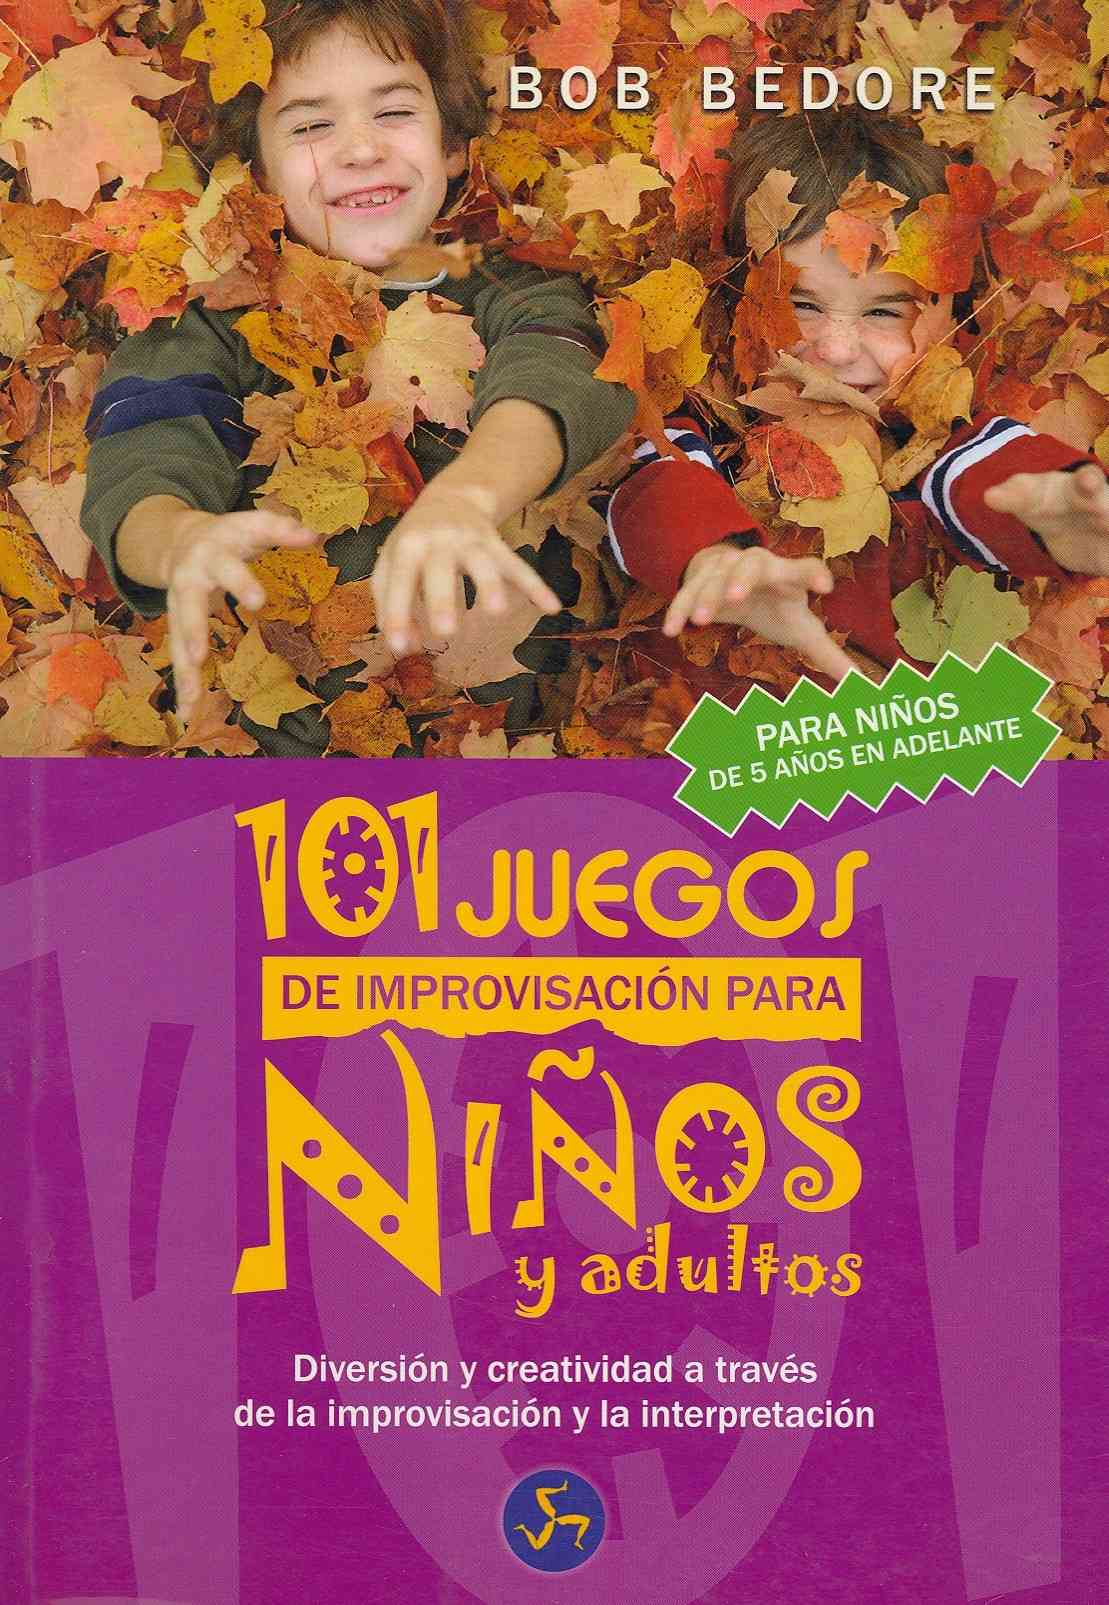 101 juegos de improvisacion para ni-¦os y adultos / 101 Improv Games for Children and Adults By Bedore, Bob